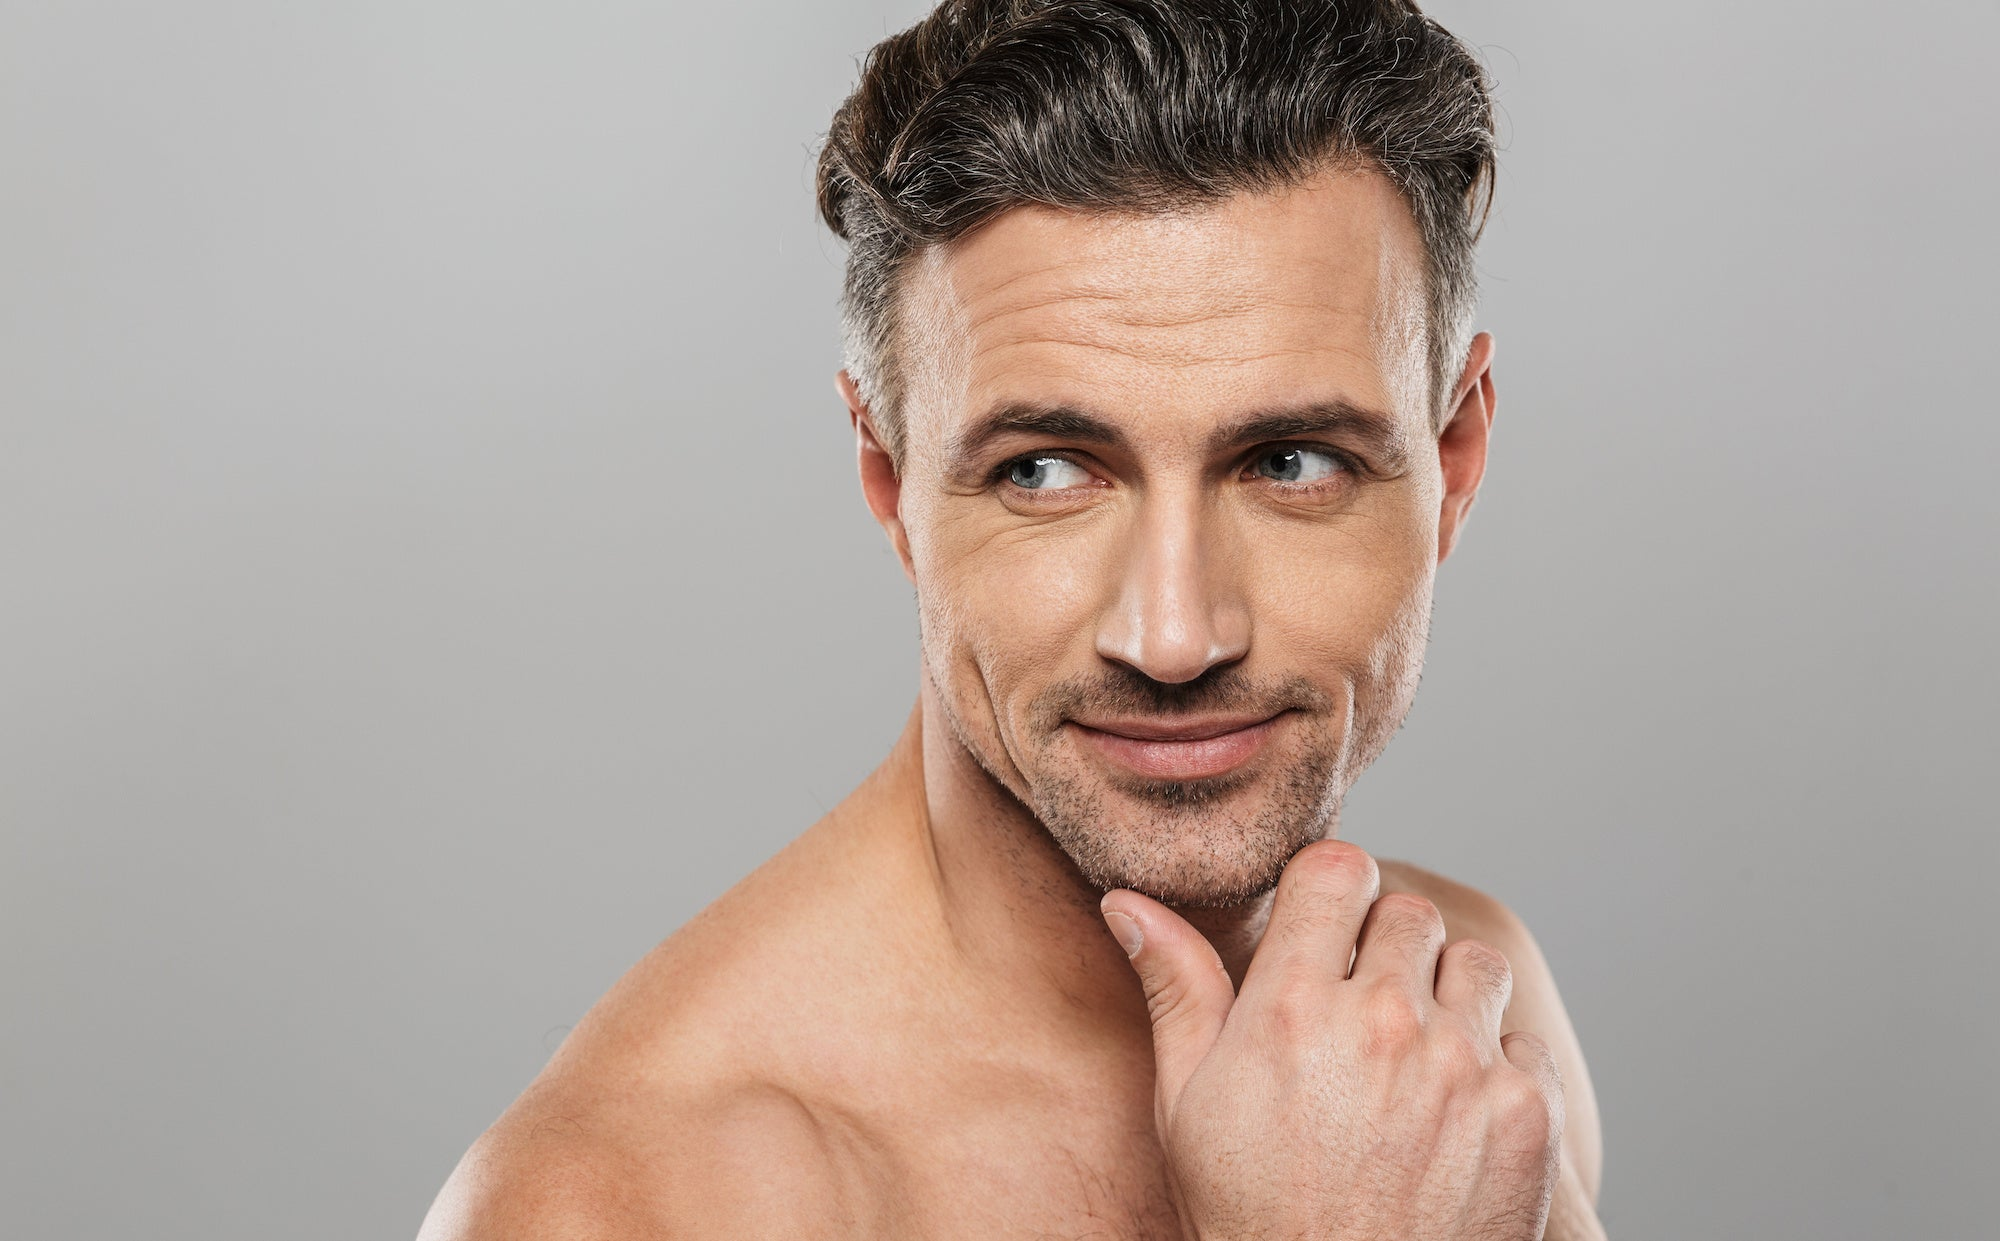 Skin Maintenance Guide For Men | The Basics